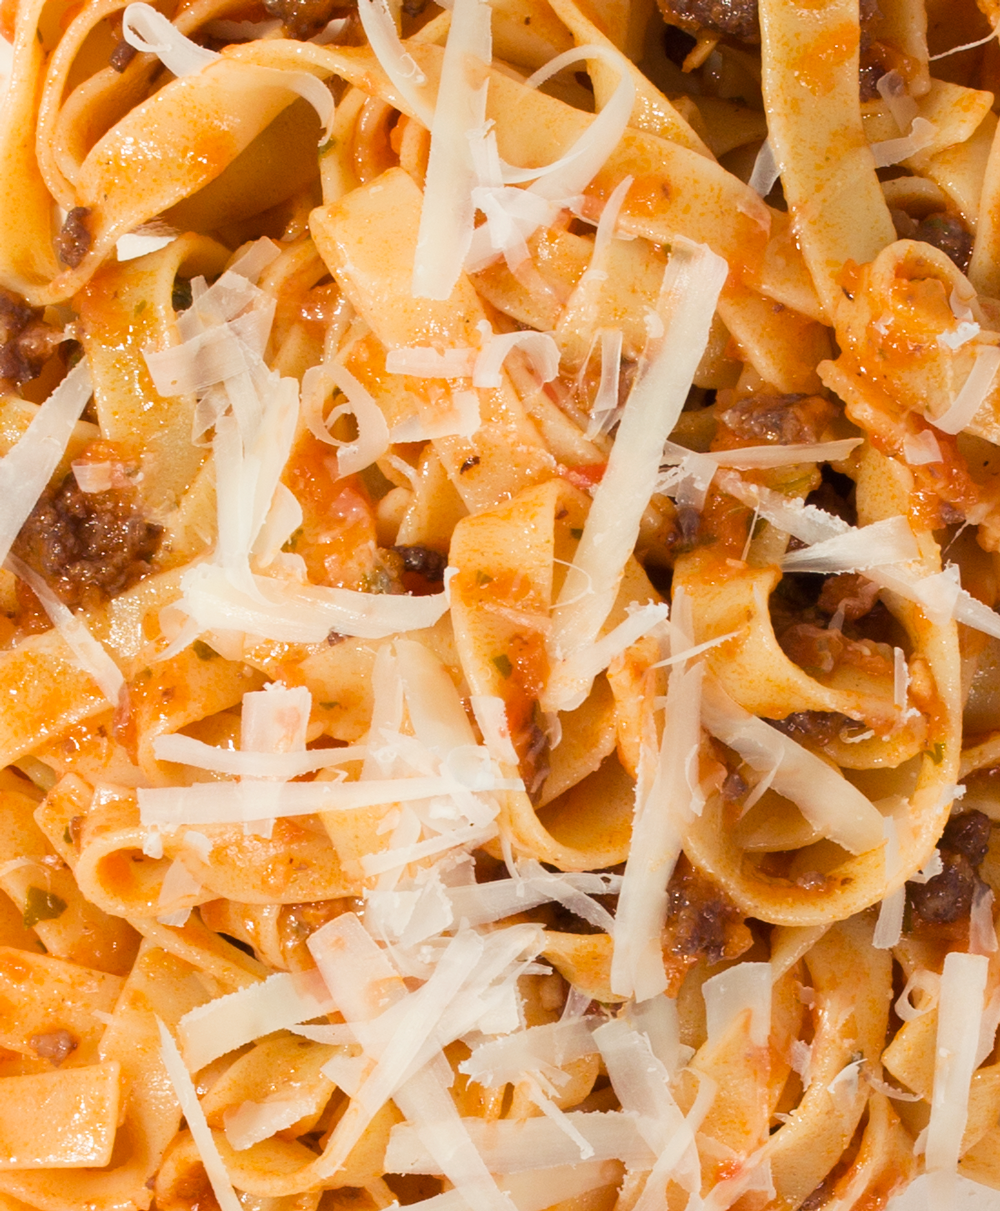 Easy pasta dishes that are still something new: http://www.aol.com/article/2016/03/08/good-eats-easy-pasta-dishes-that-are-still-something-new/21324679